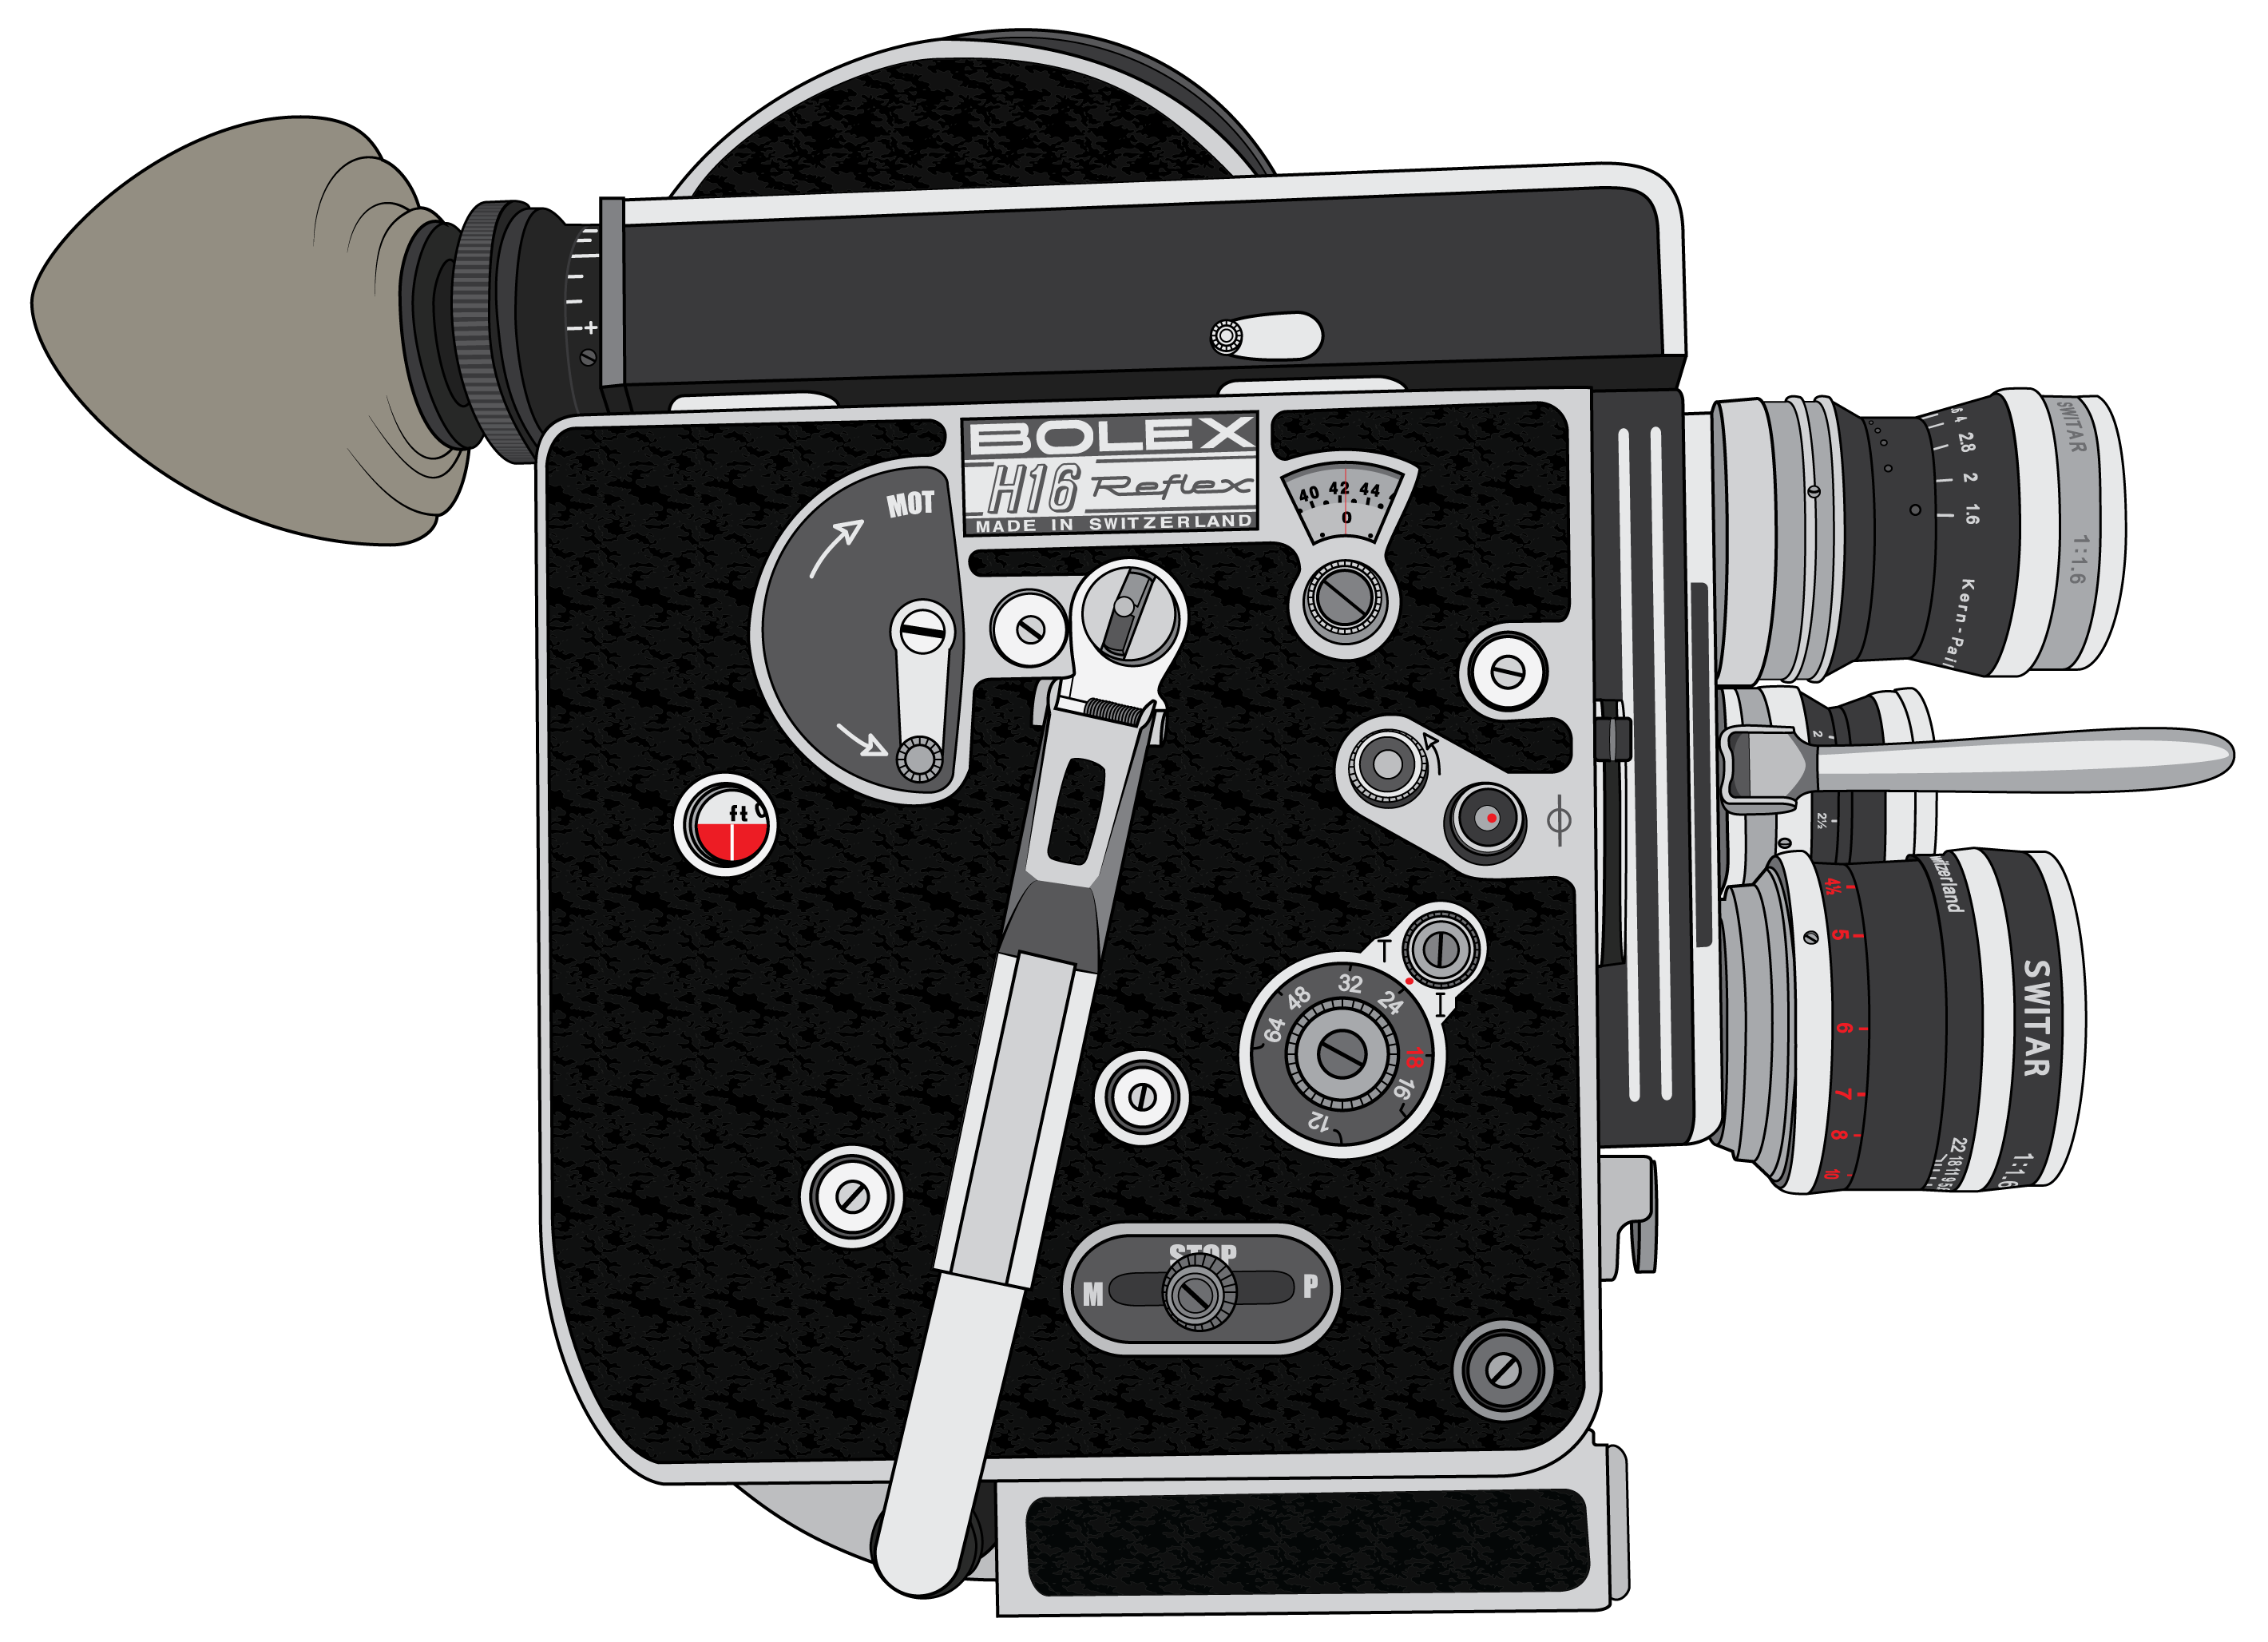 Camera Vintage Vector Png : Bolex 16mm film camera vector architecture style & design